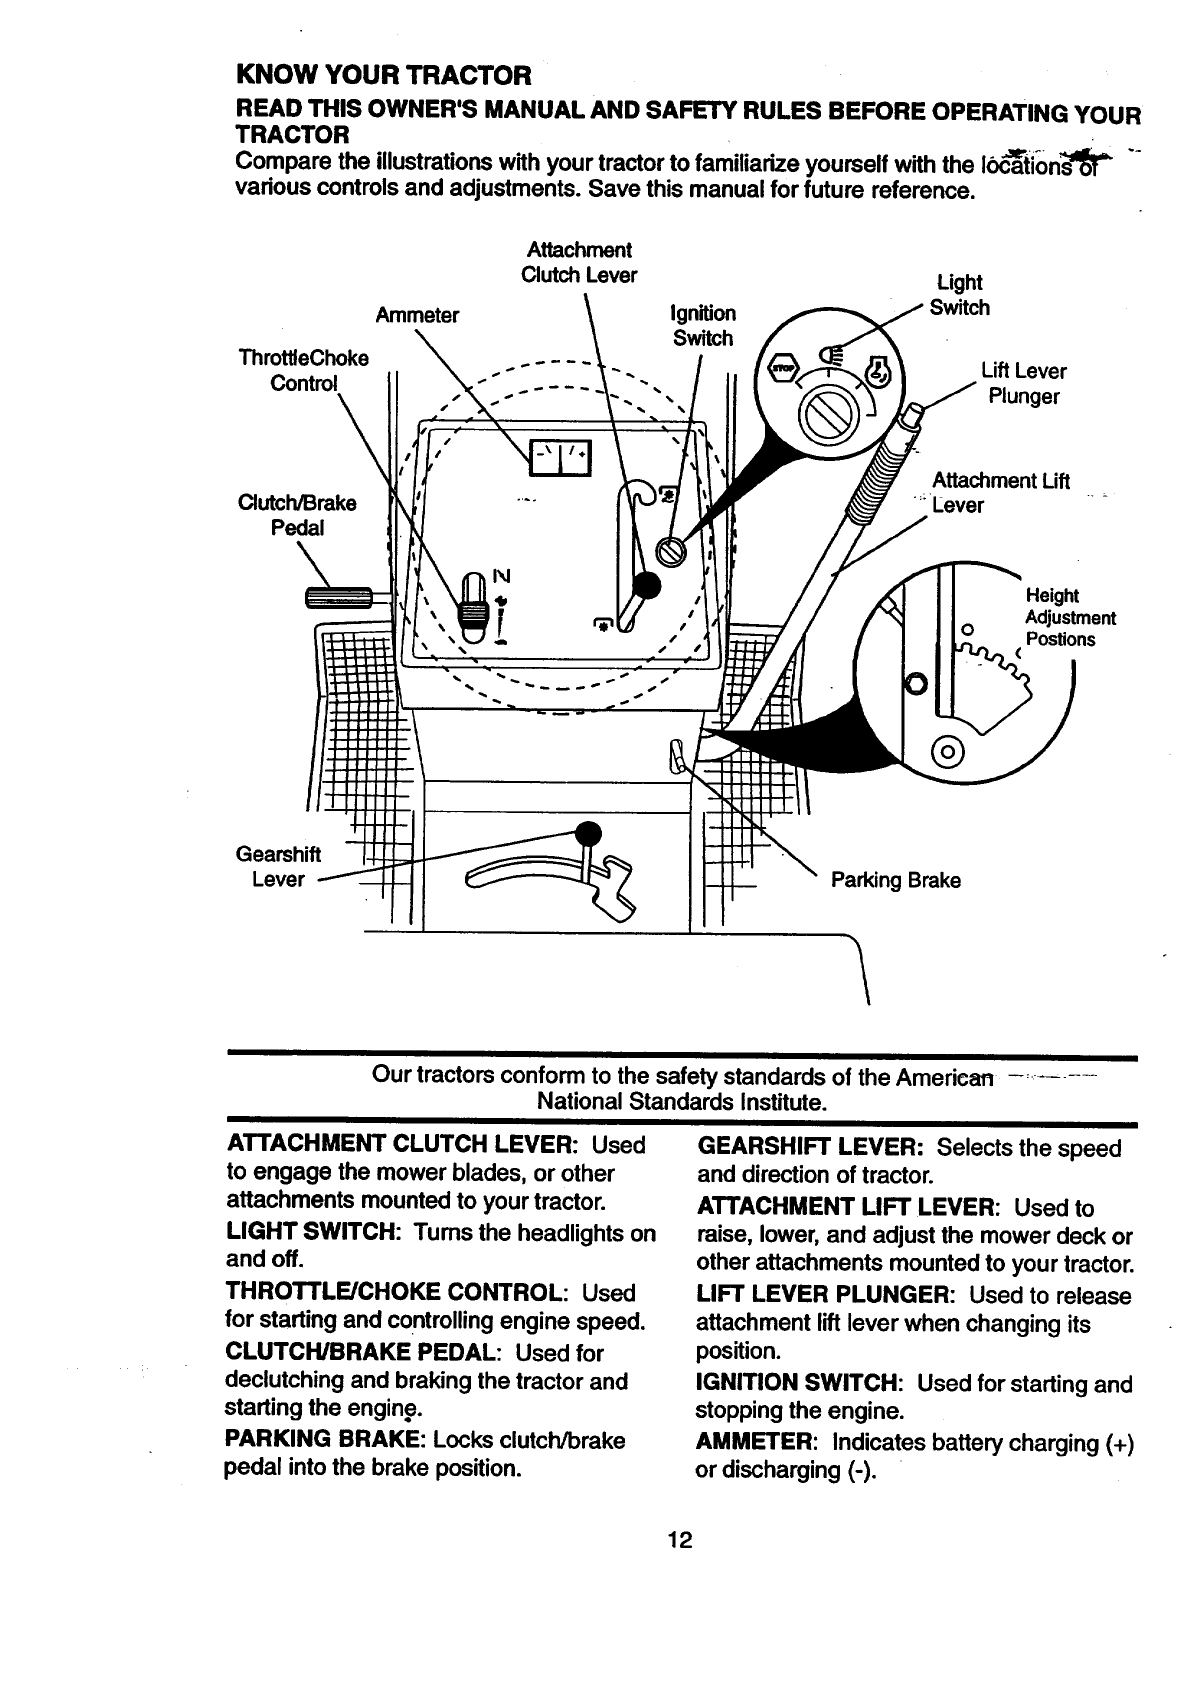 Craftsman 917 270512 Users Manual Governor Linkage Diagrams Besides Briggs Stratton Carburetor Diagram Know Your Tractor